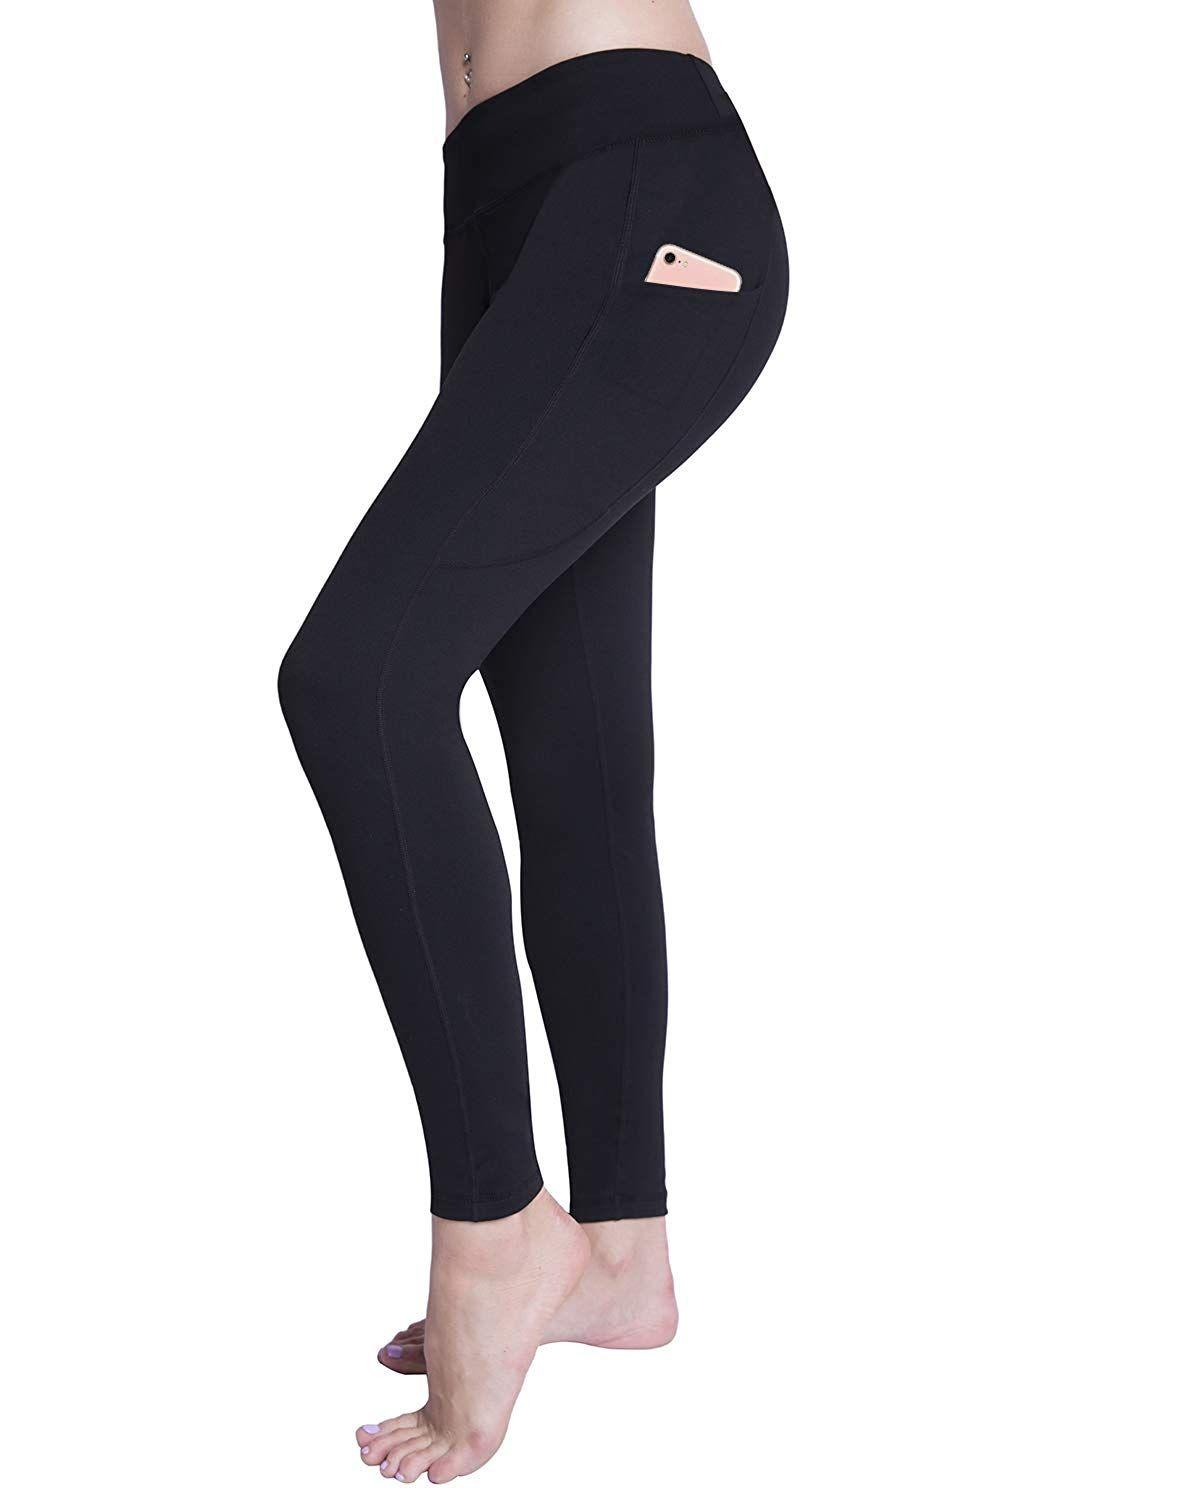 """<h3><a href=""""https://www.amazon.com/Raypose-Workout-Leggings-Pockets-785-Pink-XL/dp/B07KVZDNFN"""" rel=""""nofollow noopener"""" target=""""_blank"""" data-ylk=""""slk:High-Waist Leggings With Side Pockets"""" class=""""link rapid-noclick-resp"""">High-Waist Leggings With Side Pockets</a> </h3> <p>4.5 out of 5 stars and 121 reviews</p> <p><strong>Promising Review:</strong> For all you Lululemon fans out there, <a href=""""https://www.amazon.com/gp/customer-reviews/R12TXE0NX8EFYZ/"""" rel=""""nofollow noopener"""" target=""""_blank"""" data-ylk=""""slk:user Rebecca says"""" class=""""link rapid-noclick-resp"""">user Rebecca says</a> these are """"definitely comparable"""" but at a fraction of the price. """"LOVE THEM!"""" she says. """"They fit incredibly well and are so comfy for going on runs or just running errands.""""</p> <br> <br> <strong>Raypose</strong> High Waist Leggings With Pocket, $15, available at <a href=""""https://www.amazon.com/Raypose-Workout-Leggings-Pockets-785-Pink-XL/dp/B07KVZDNFN"""" rel=""""nofollow noopener"""" target=""""_blank"""" data-ylk=""""slk:Amazon"""" class=""""link rapid-noclick-resp"""">Amazon</a>"""